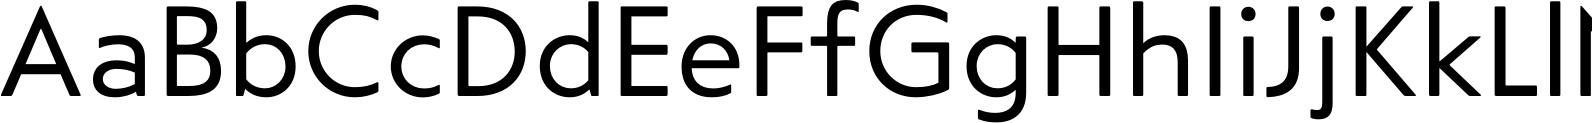 Steagal Regular Font